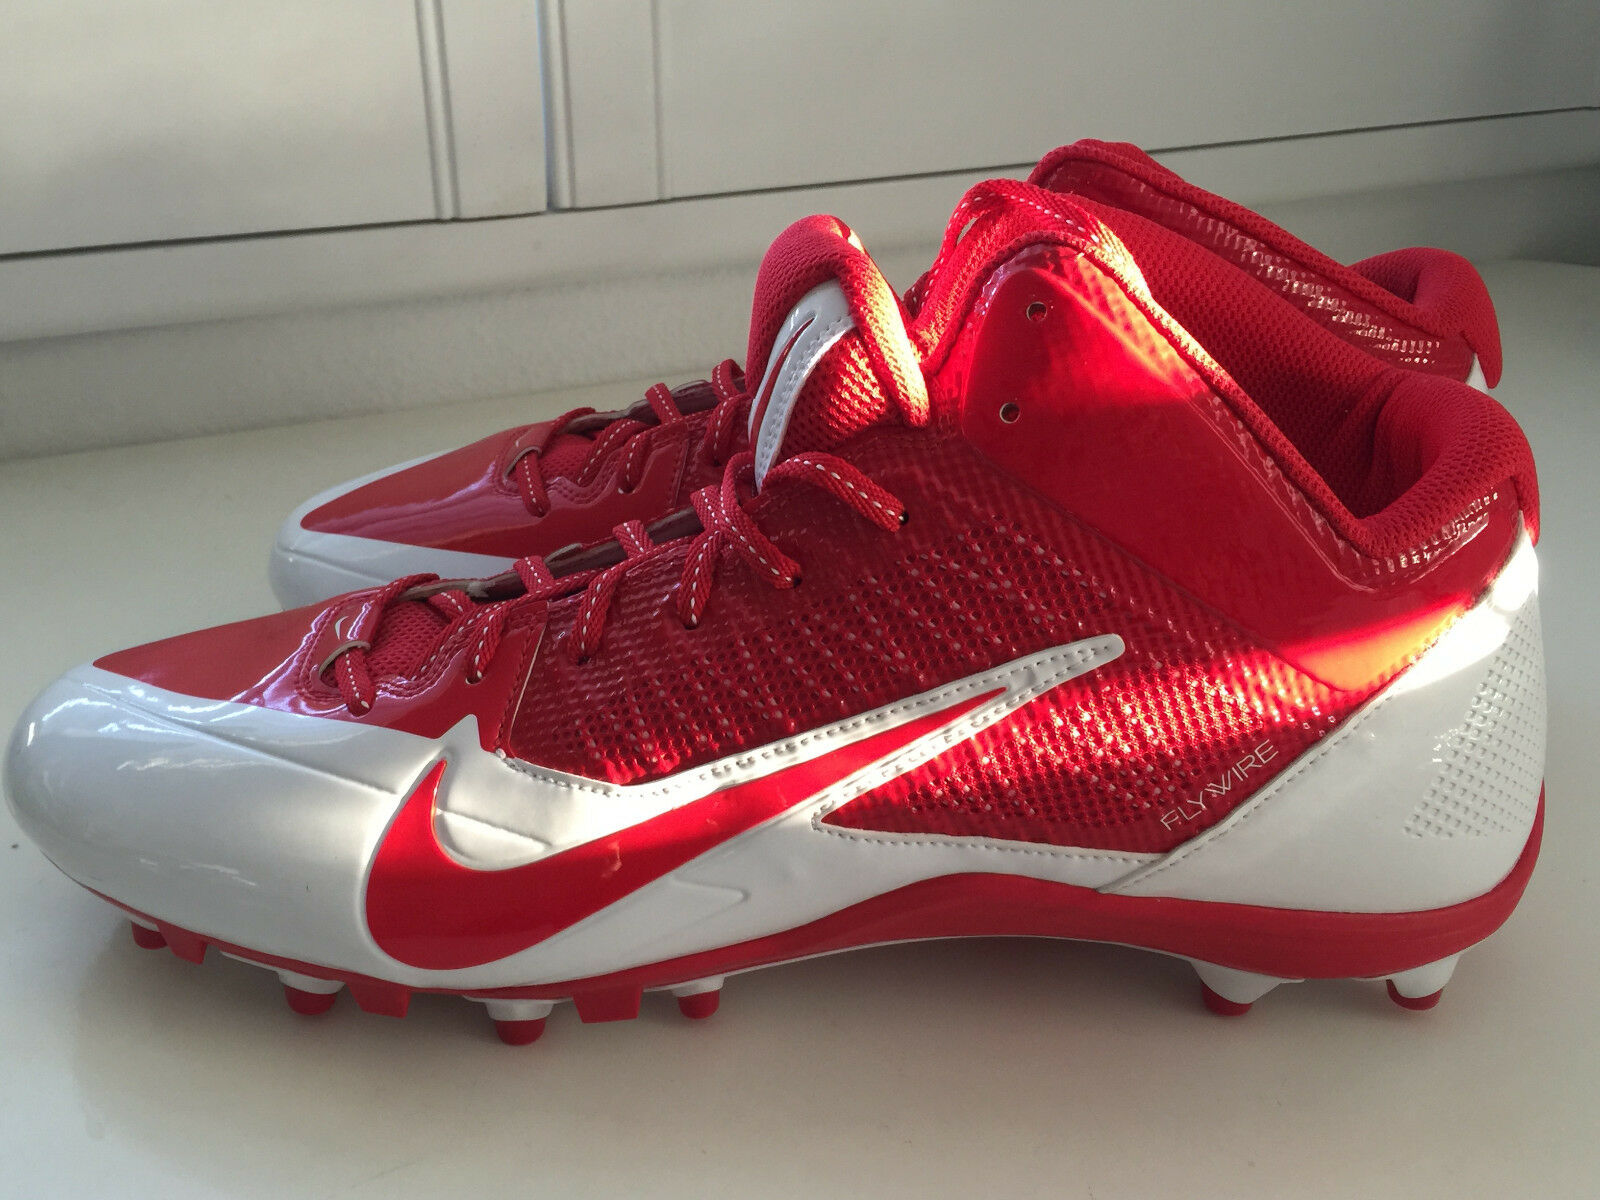 NIKE RED AND CLEATS WHITE  FOOTBALL CLEATS AND SIZE 16 e70625